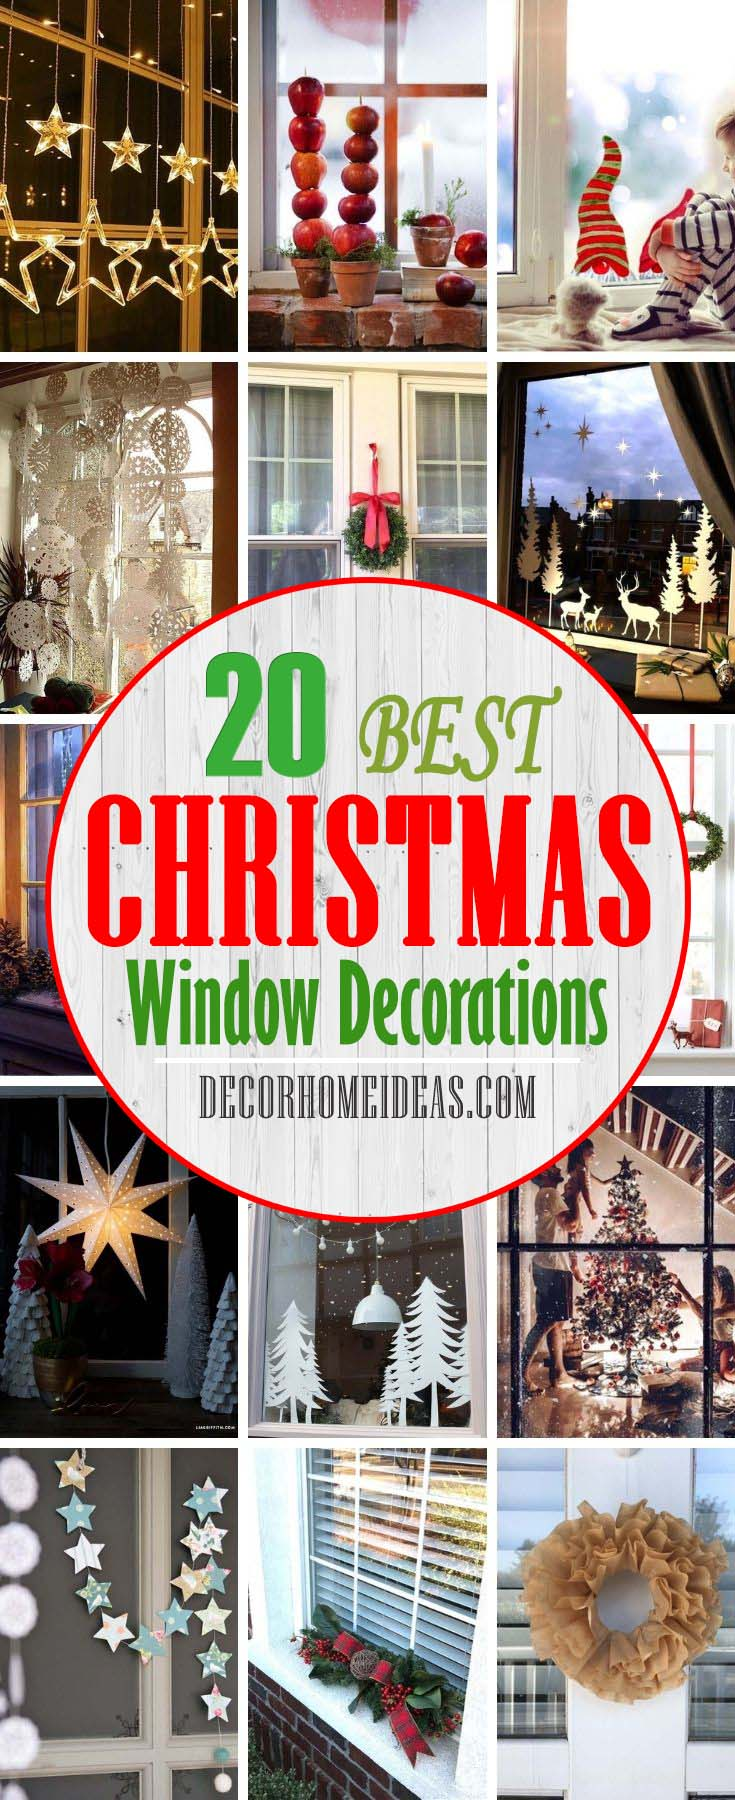 Best Window Christmas Decorations. When it comes to Christmas decorations, it's easy to overlook your windows. See these 20+ chic window decorating ideas to show off your holiday spirit.